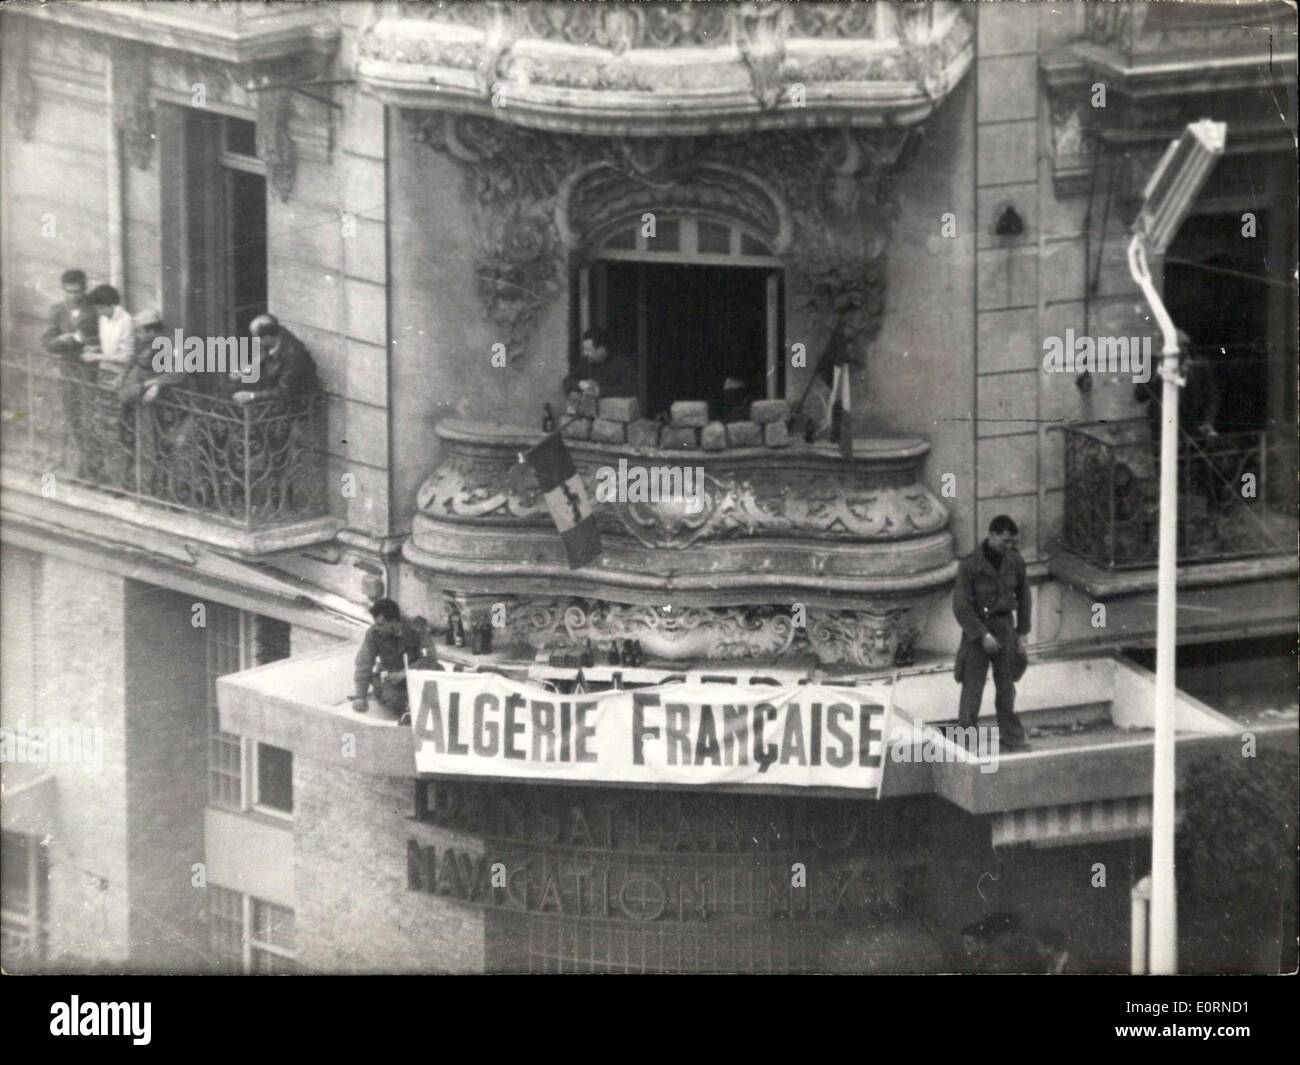 Jan. 27, 1960 - Revolt in Algiers. OPS: A group of insurgents on the roof and balcony of a house they occupy. In Stock Photo